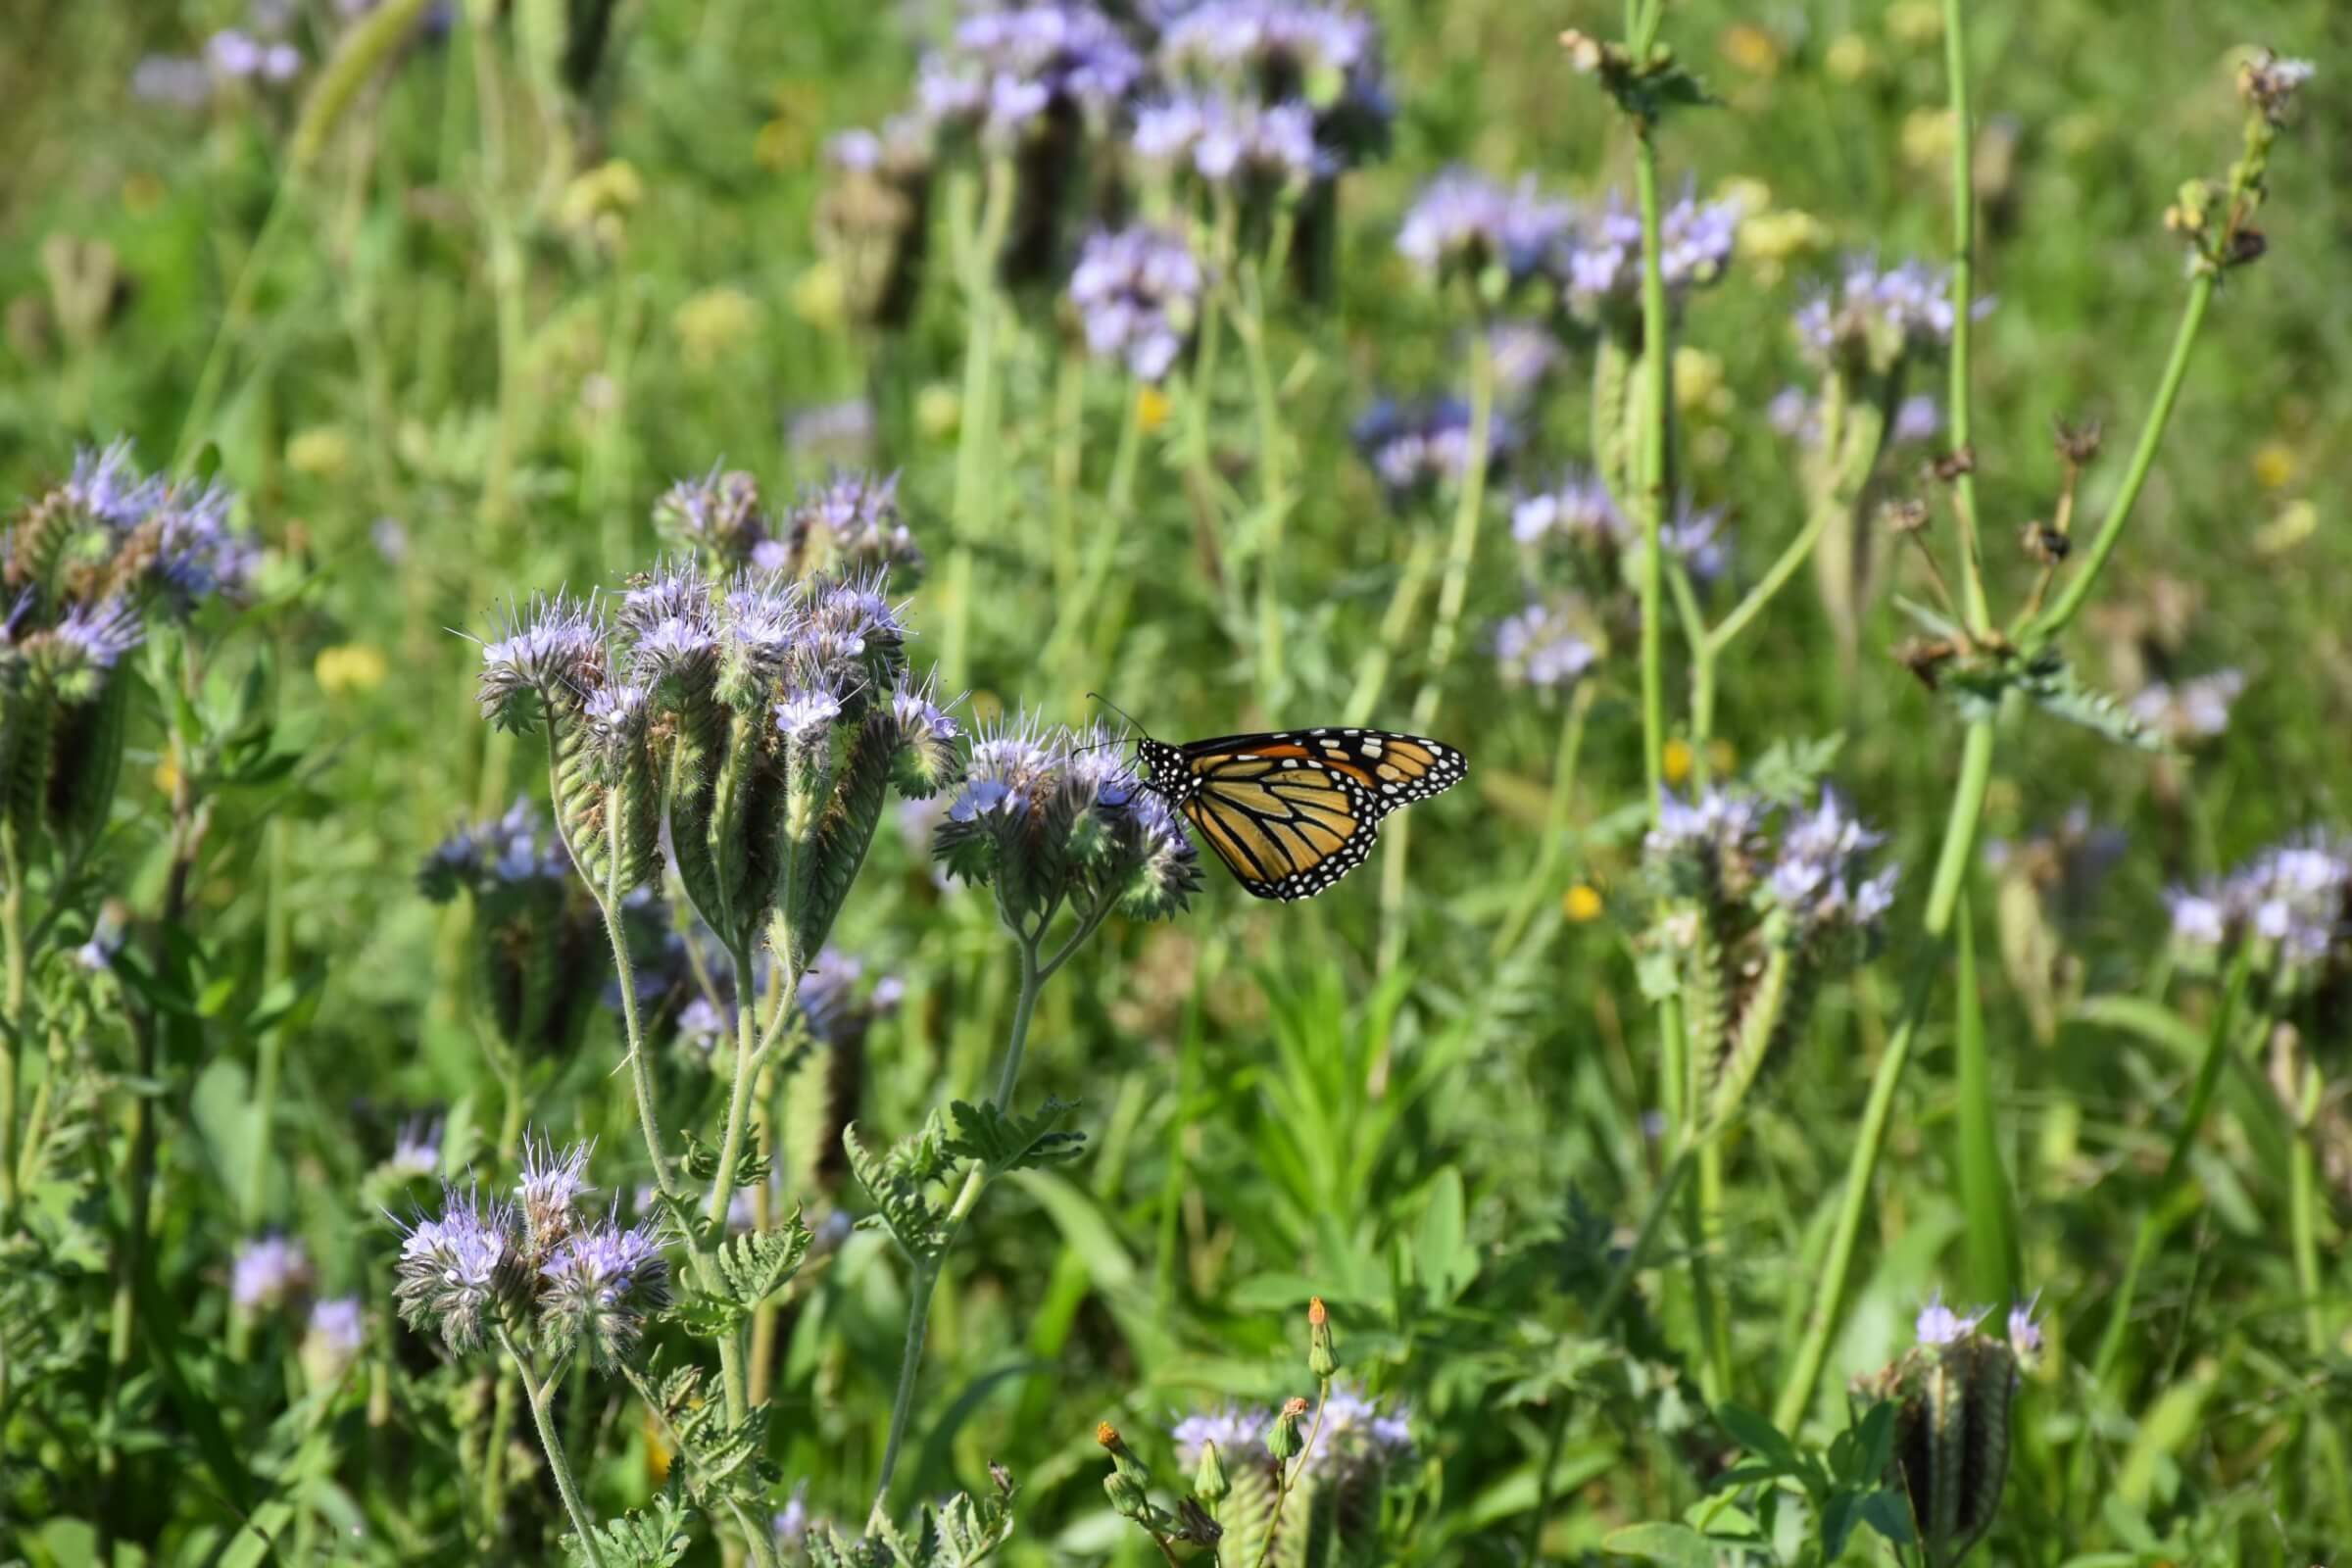 Strip of pollinator-friendly flowering plants, including Phacelia, planted at the edge of a farm field as part of the Operation Pollinator program